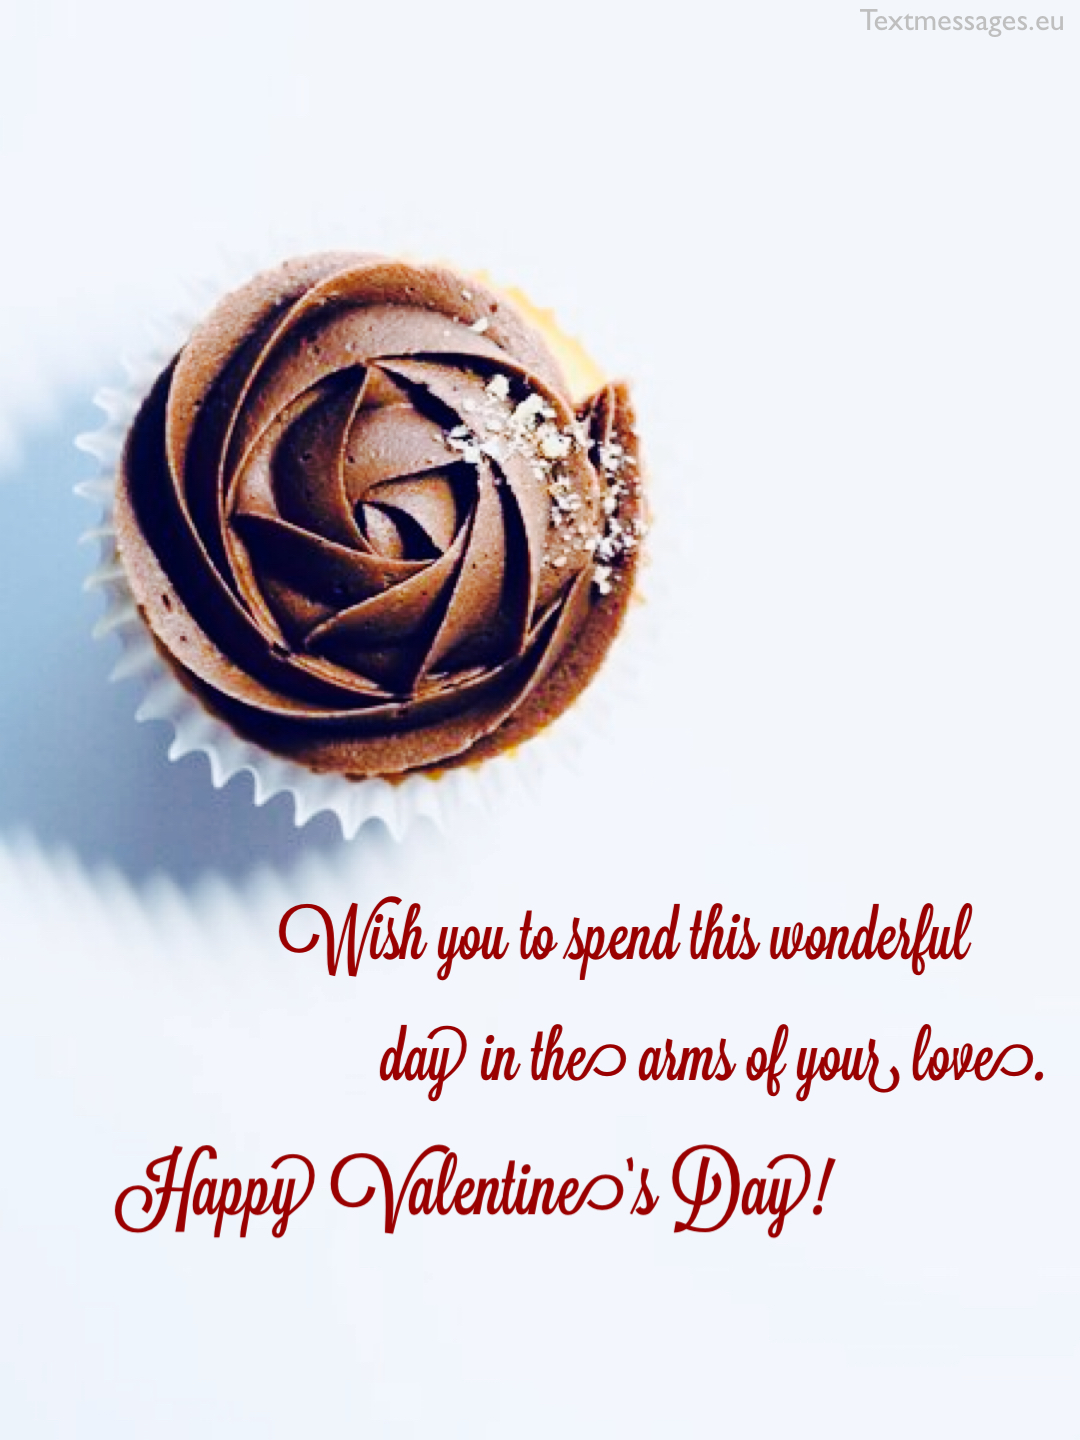 valentine's day image for friends